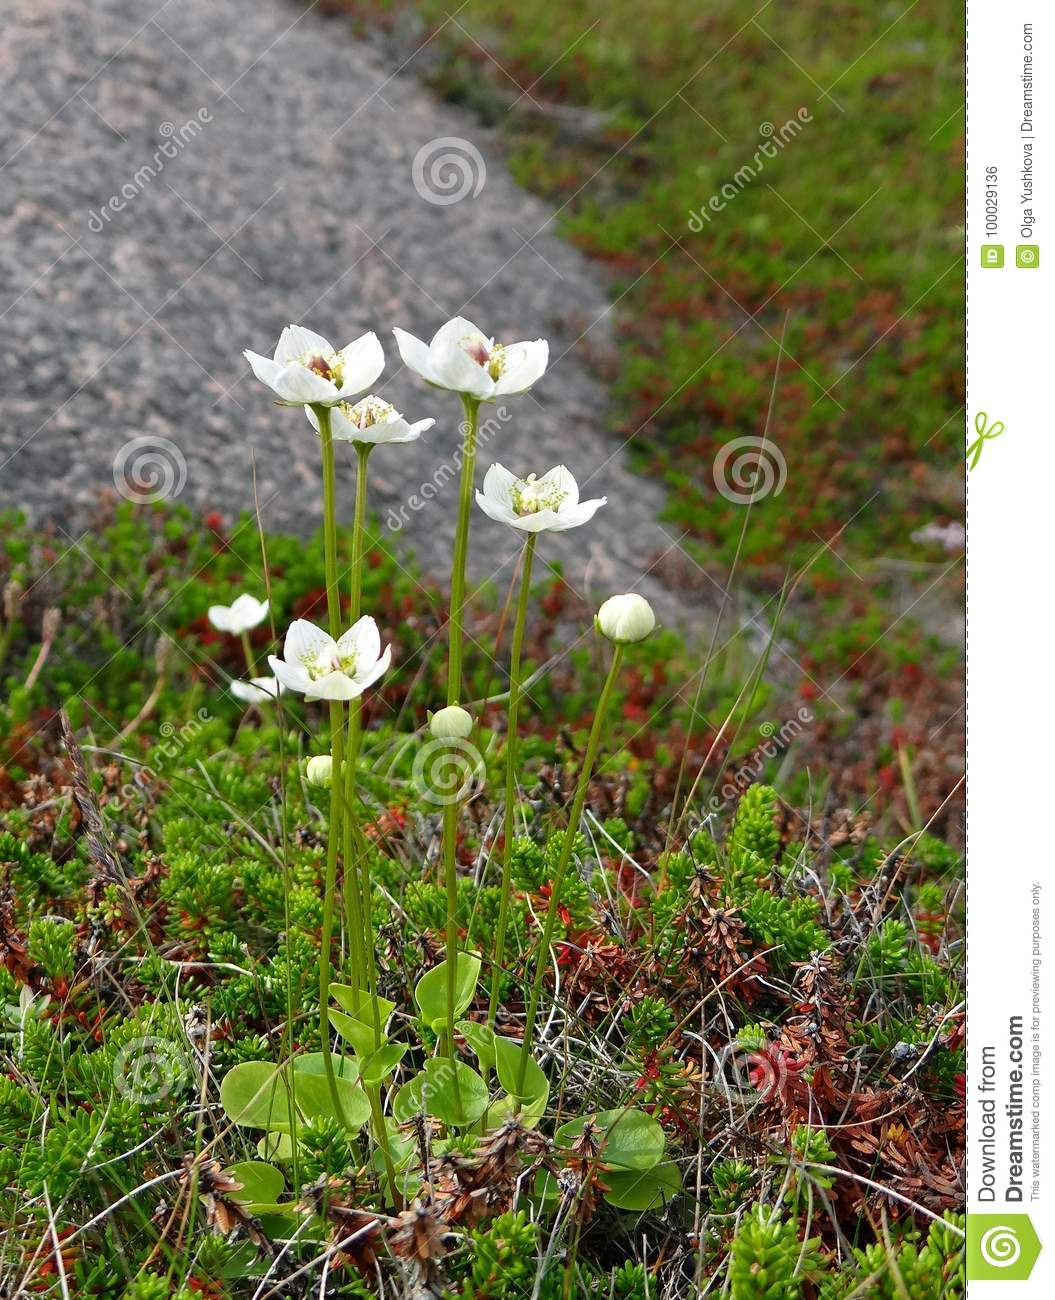 Wild White Flowers Among Green Moss Stock Photo Image Of Islands